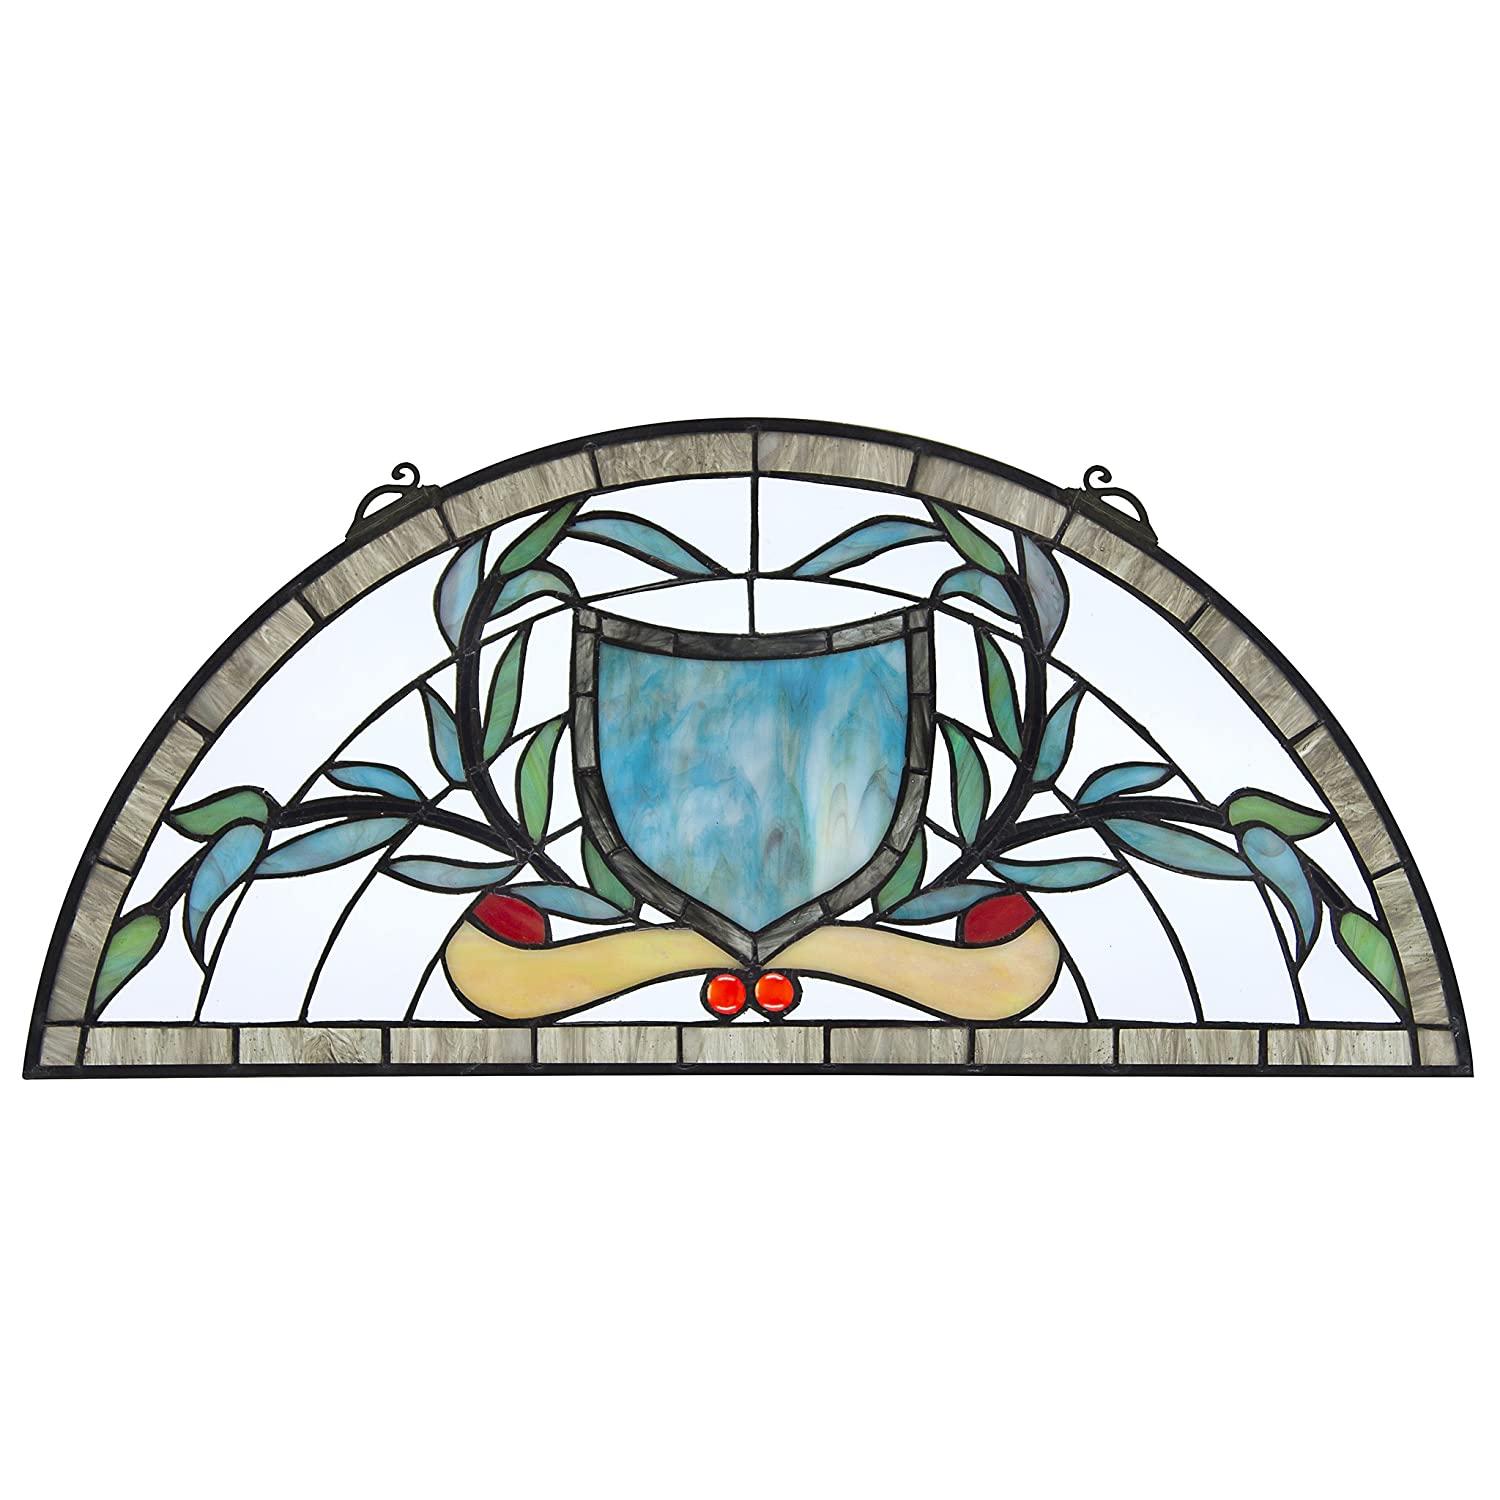 Design Toscano Lady Astor Demi-Lune Stained Glass Window Hanging Panel, 81 cm, Stained Glass, Full Color HD464